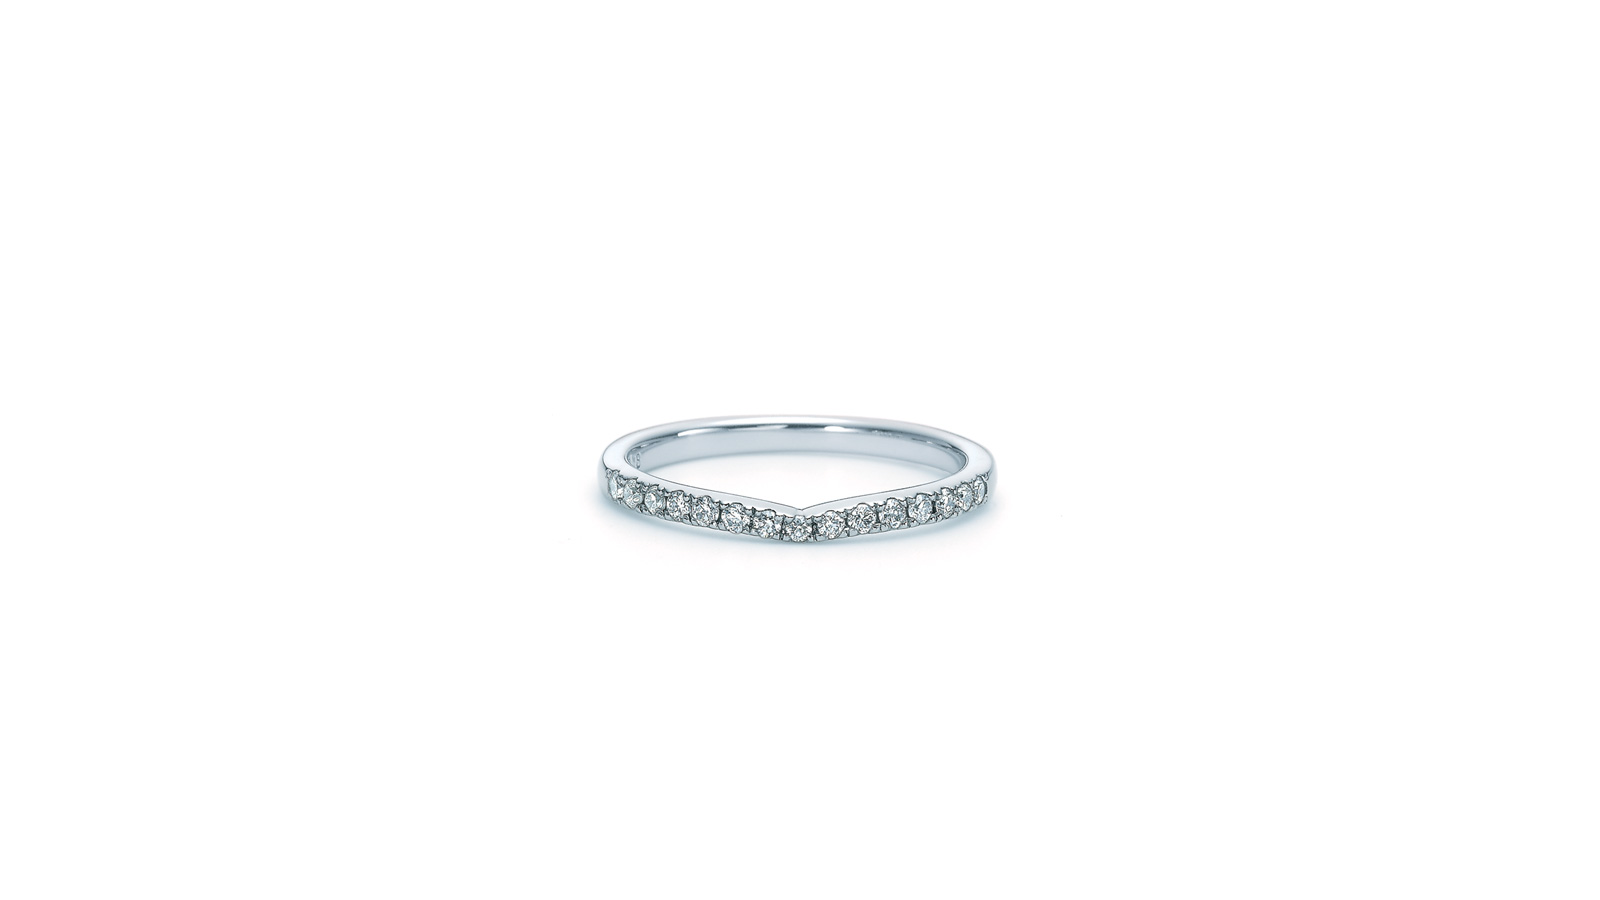 ETERNITY RING 01